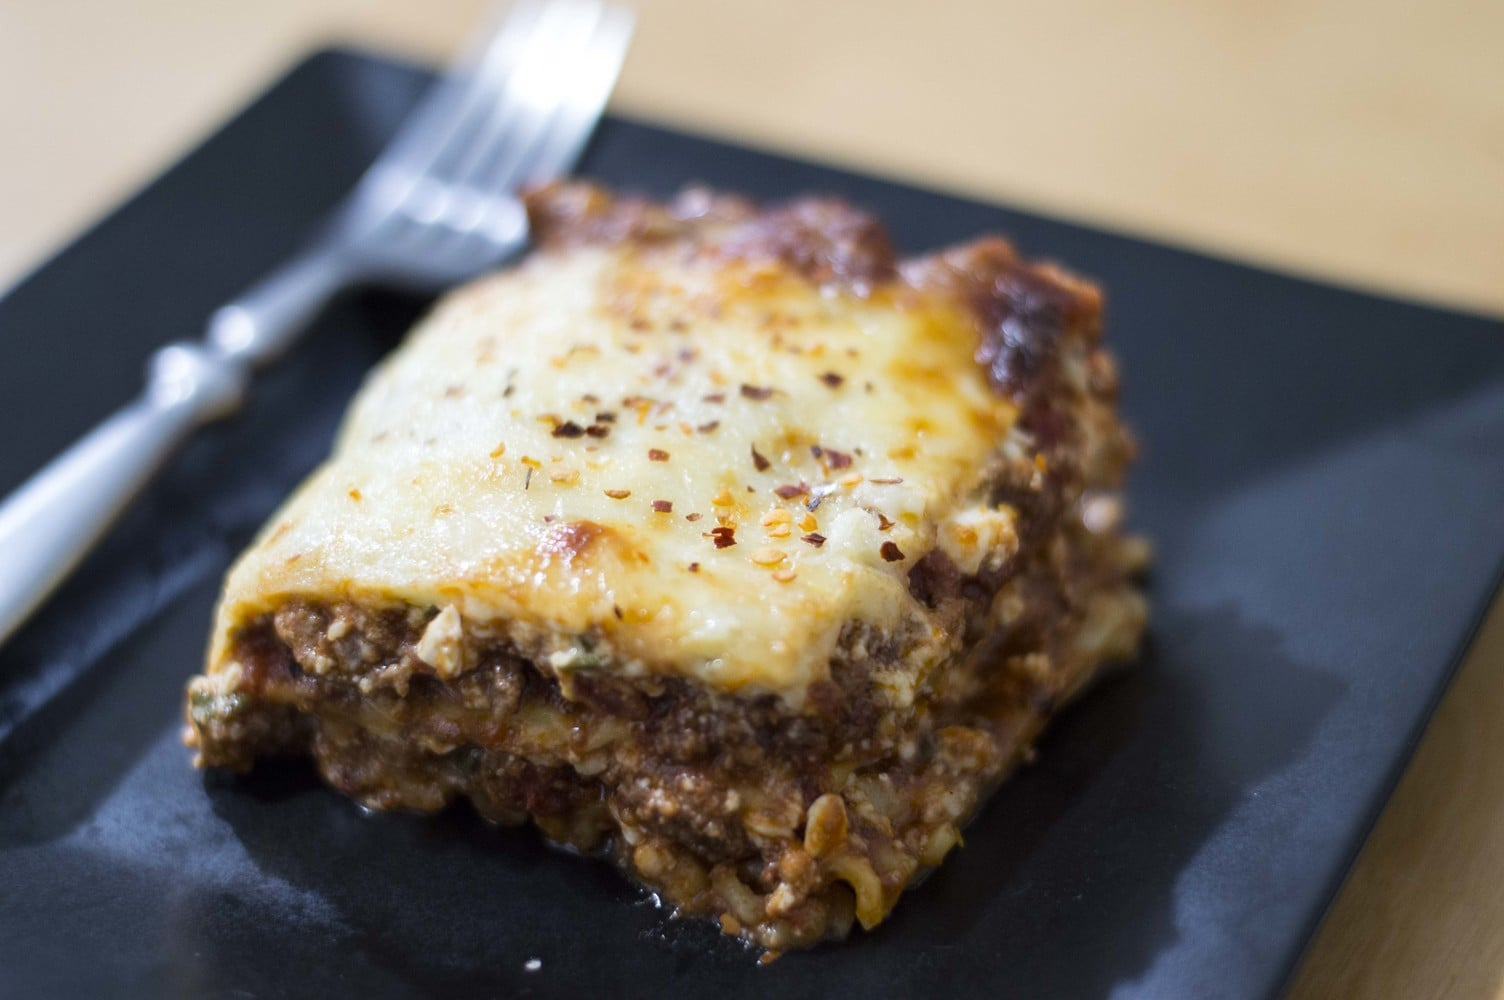 A simple and elegant plating of our classic lasagna